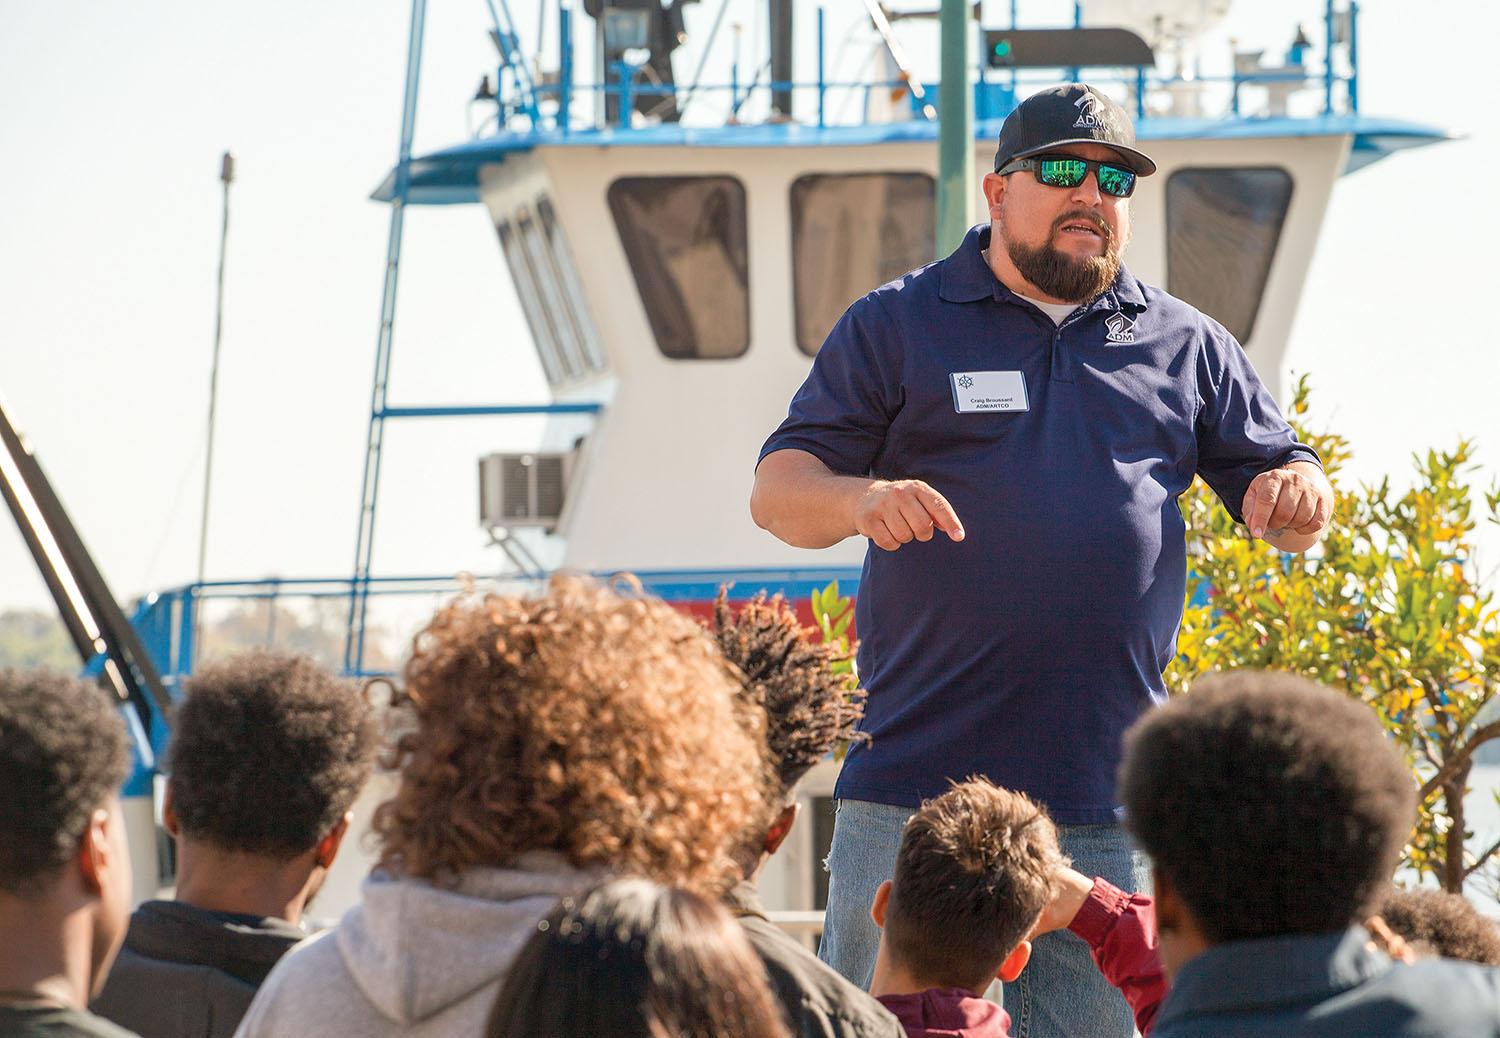 Among the presenters at RiverWorks Discovery's Who Works The Rivers event in New Orleans, Craig Broussard of ADM/ARTCO urged students to earn their high school diploma and consider a maritime career. (Photo by Frank McCormack)